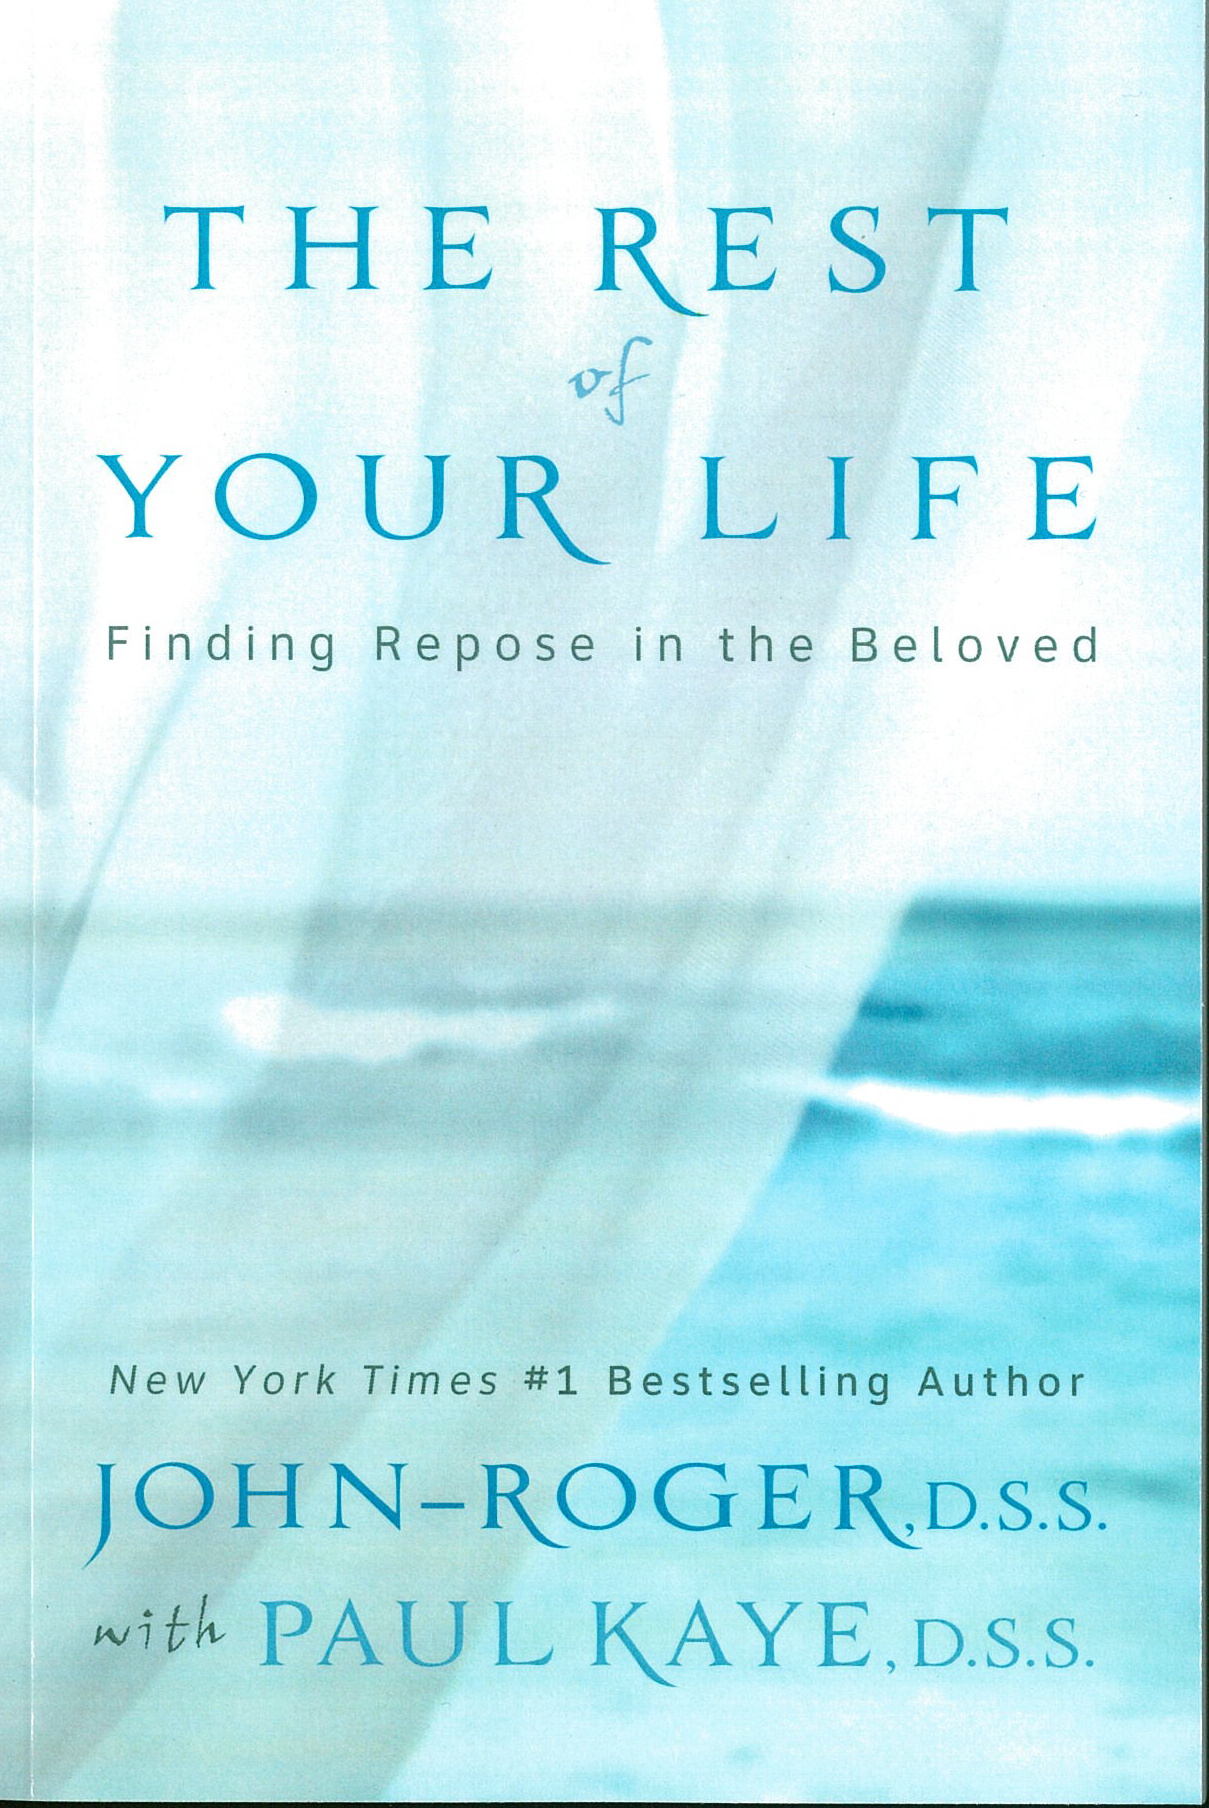 The Rest of Your Life: Finding Repose in the Beloved - e-Book in PDF